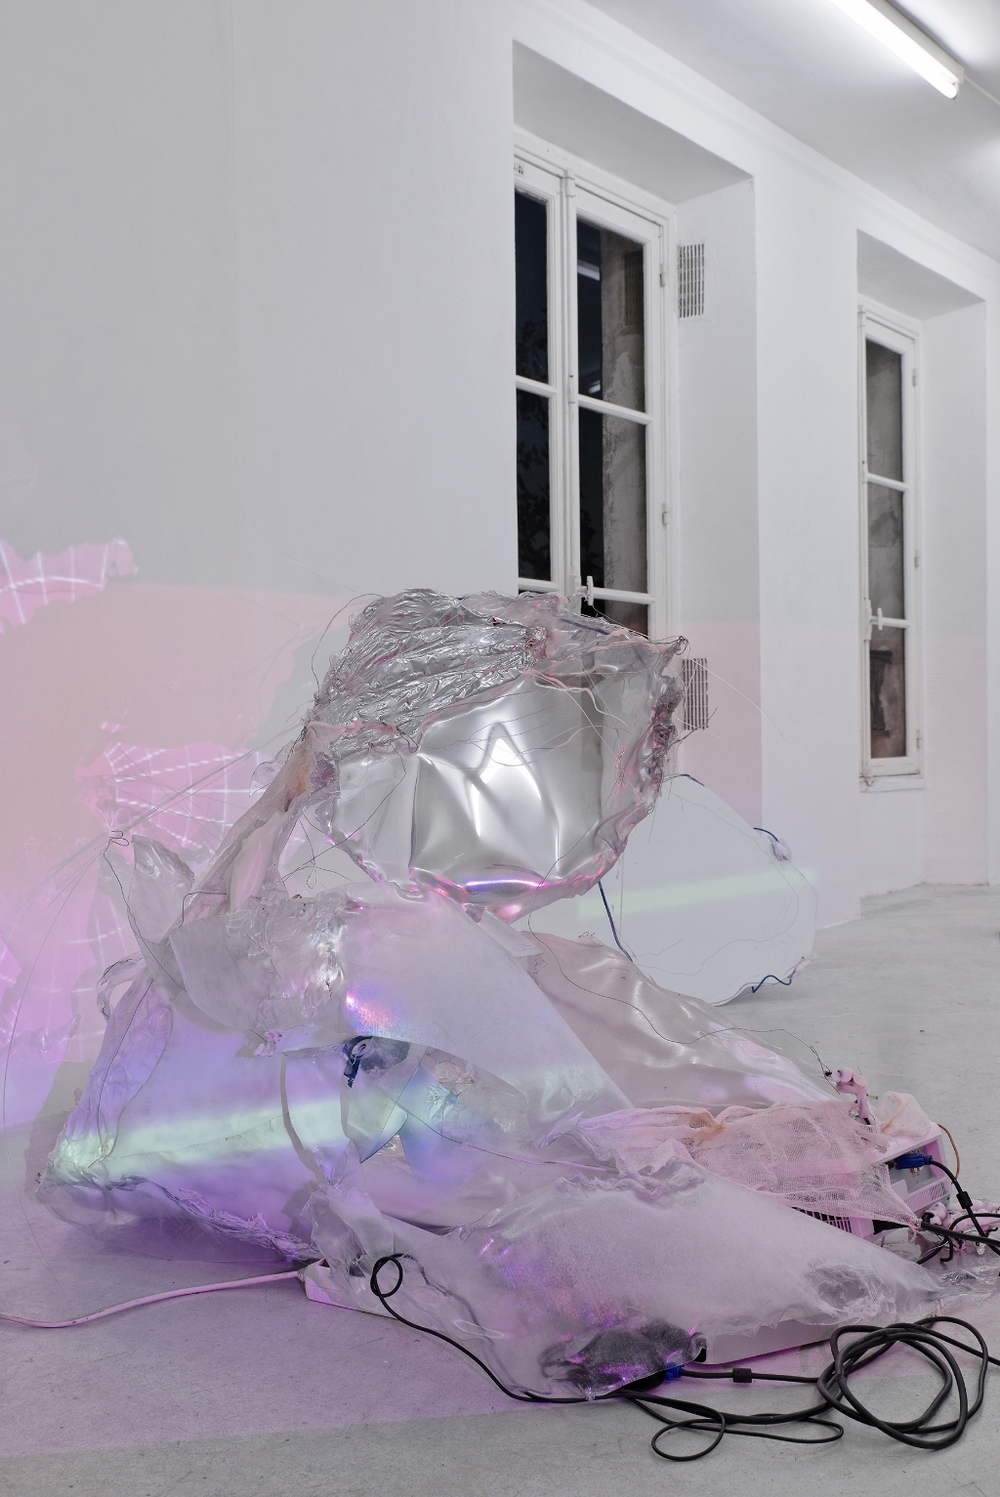 Daiga Grantina, ЯR, 2014, Polycarbonat, string, wire, mirror spray, aluminum, projection 1 (super8 transf. to PAL, loop), projection 2 (digital, loop), Dimensions variable, Photo credit / Aurélien Mole, Courtesy Galerie Joseph Tang, Paris